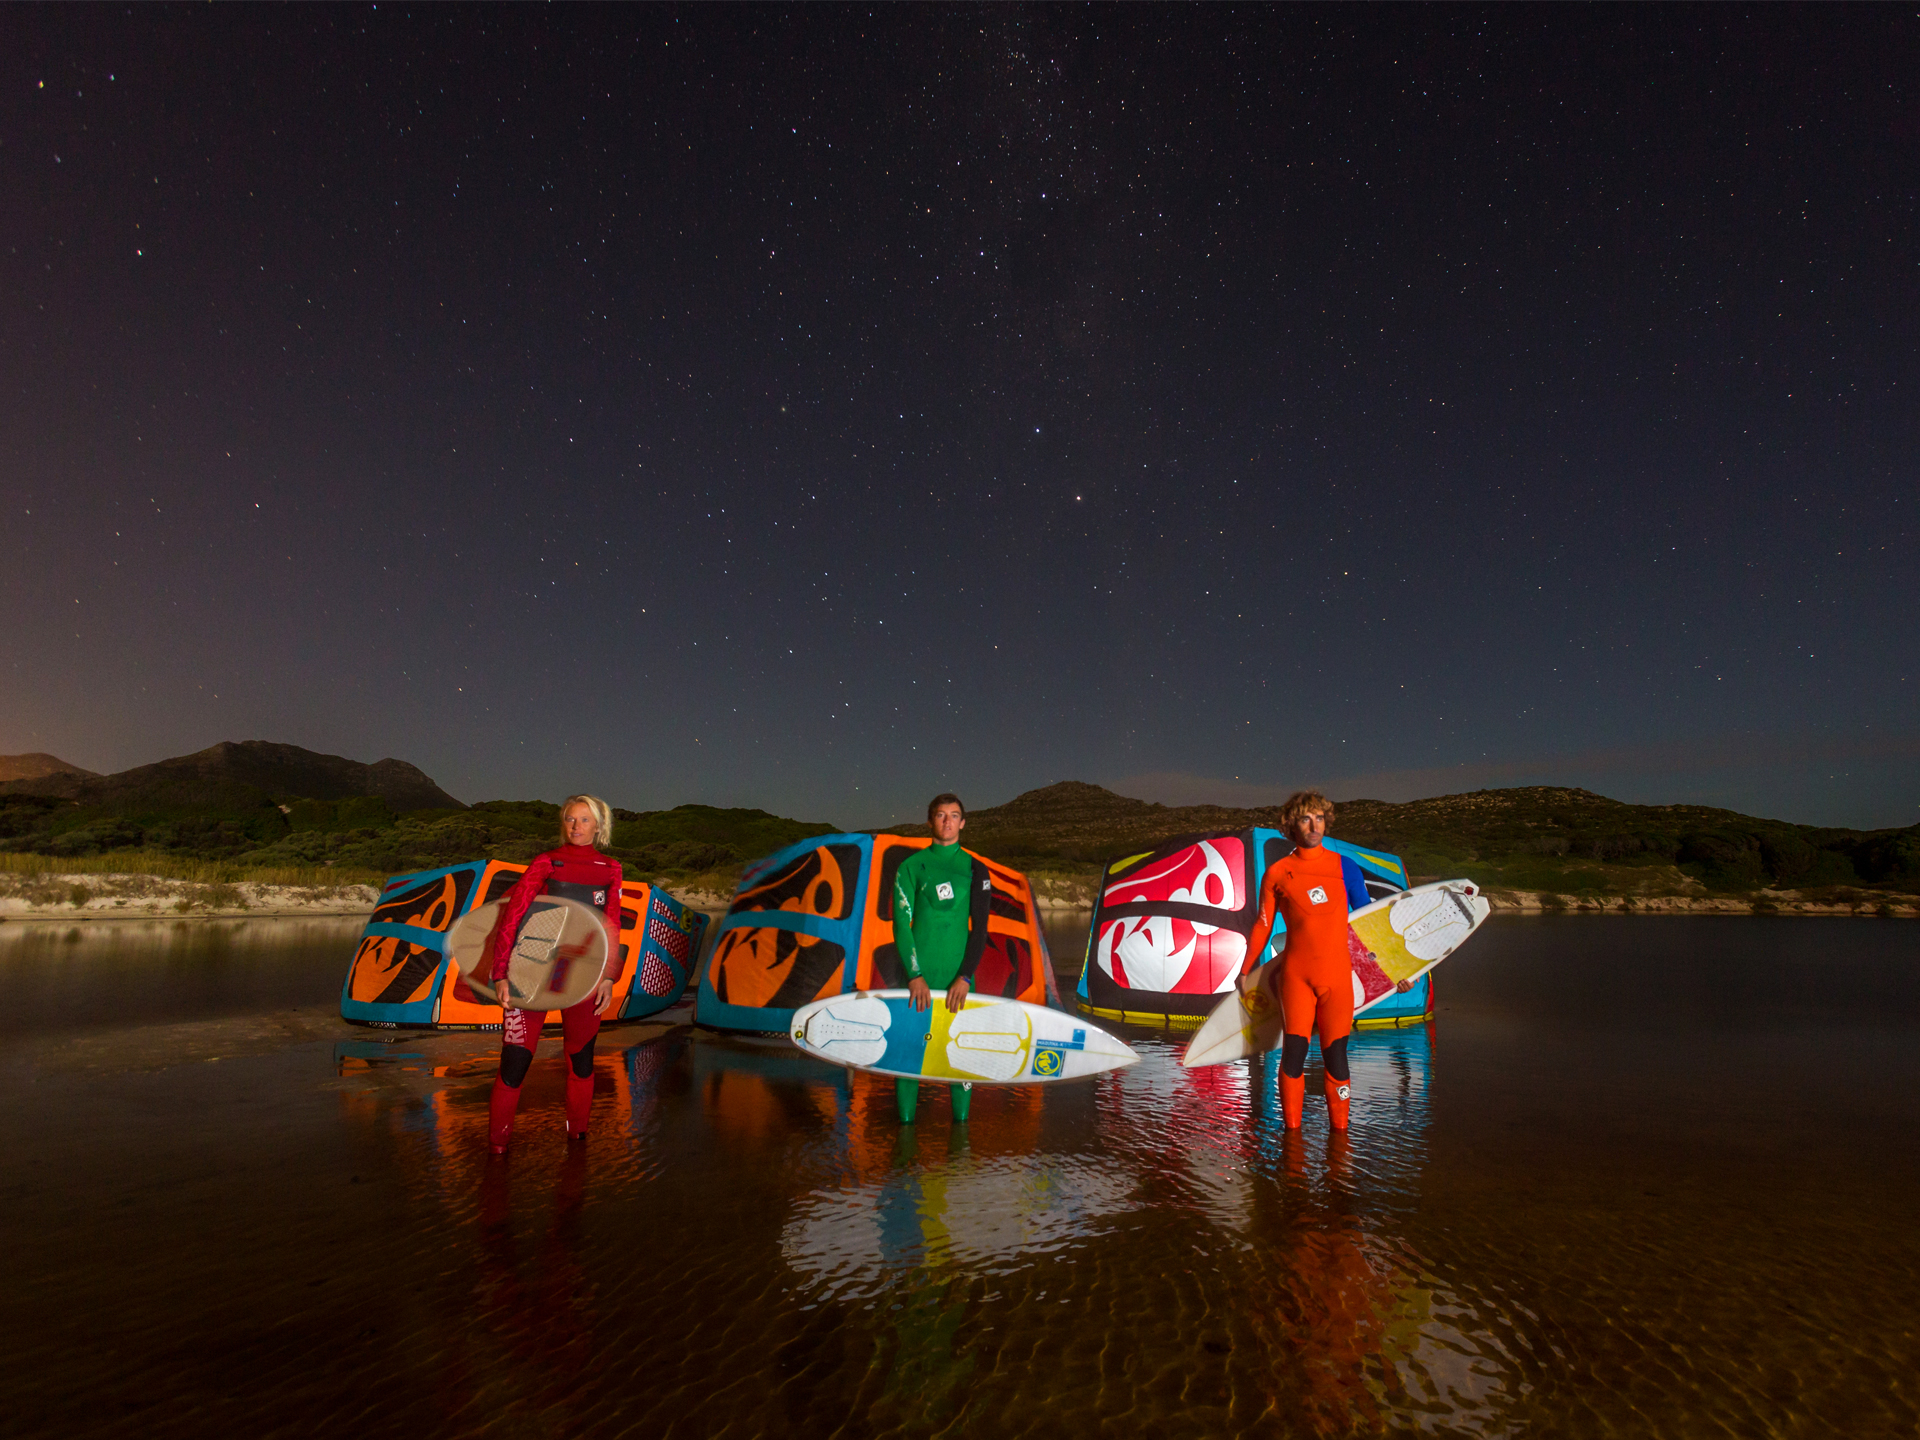 kitesurf wallpaper image - RRD wave trio looking at the stars with their 2015 Religion kites - Abel Lago and Kari Schibevaag - kitesurfing - in resolution: Standard 4:3 1920 X 1440